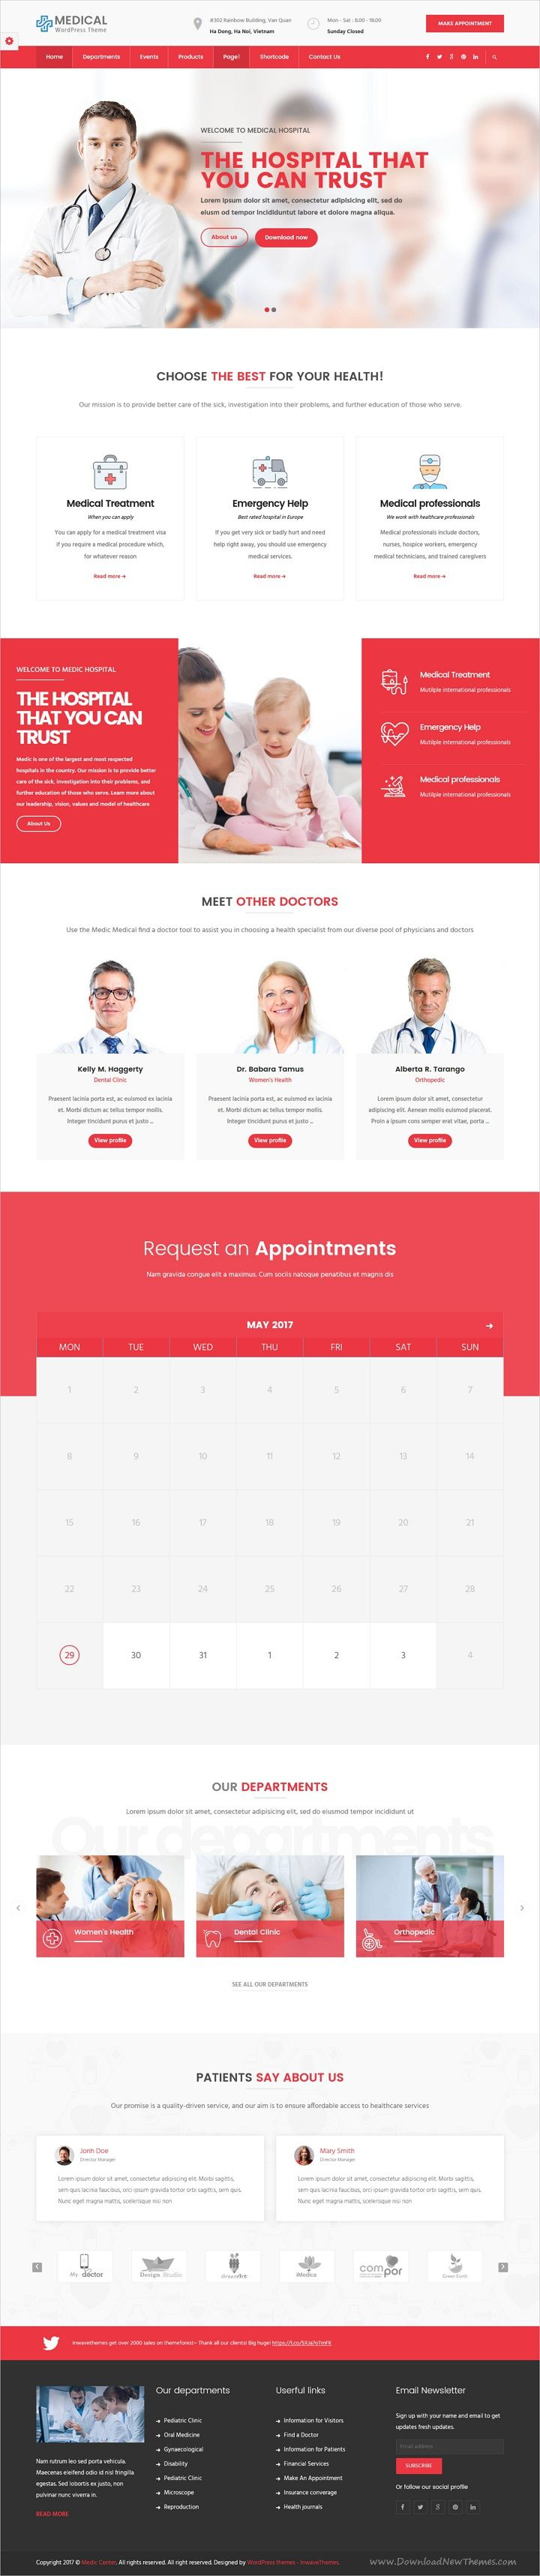 inMedical is powerful and eye-catching responsive #WordPress theme for #Medical, #Clinic and Hospitals website with 6 unique homepage layouts download now➩ https://themeforest.net/item/inmedical-medical-clinic-hospital-wordpress-theme/19551351?ref=Datasata